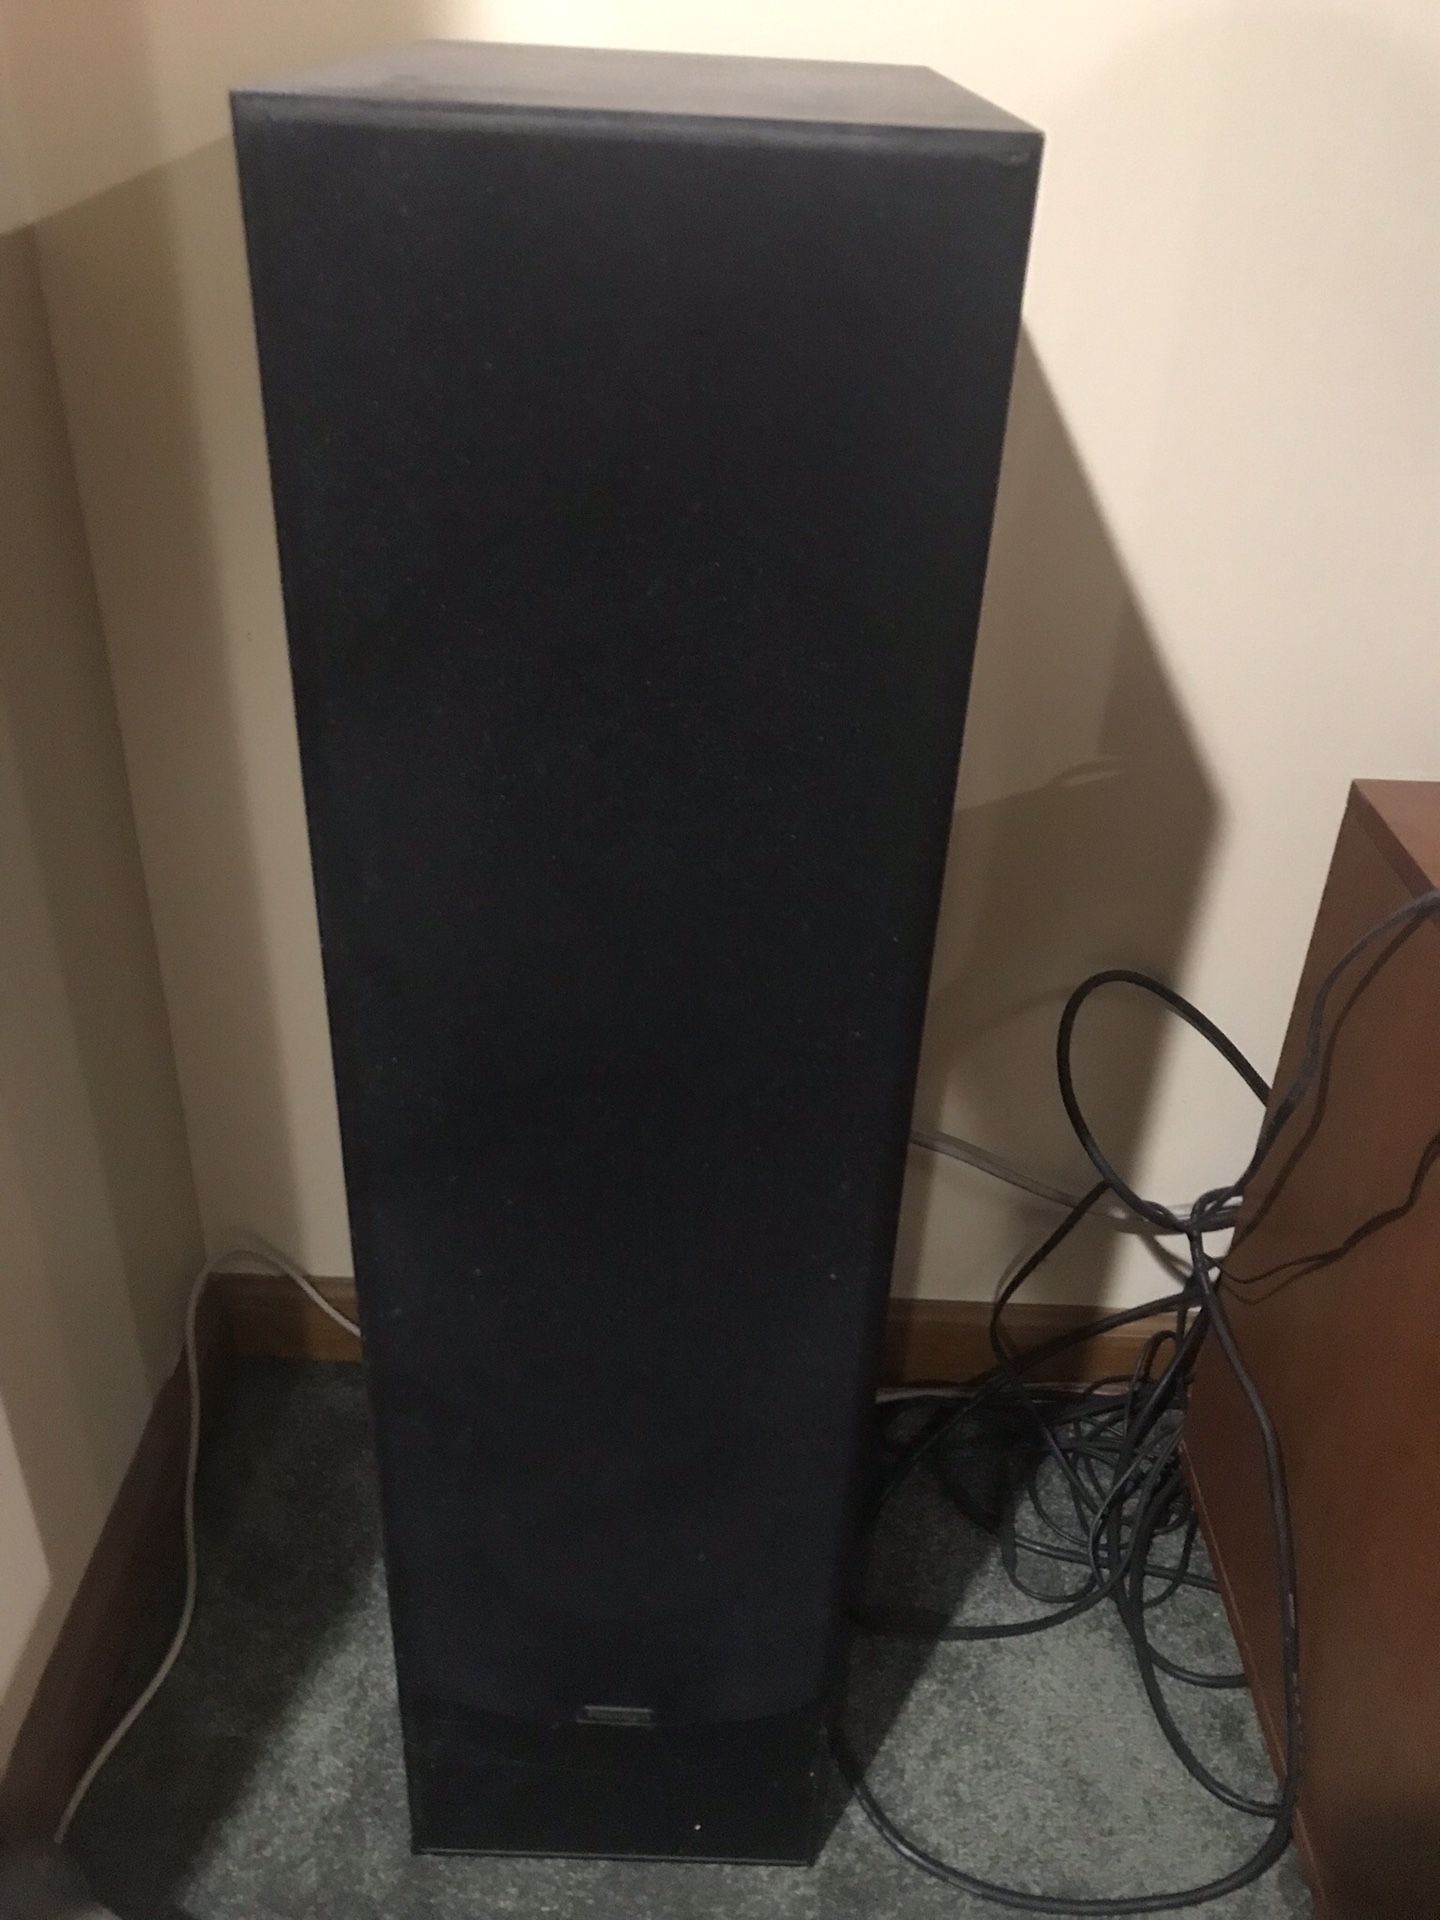 Onkyo 5.1 complete surround sound system five speakers 500 W powered sub